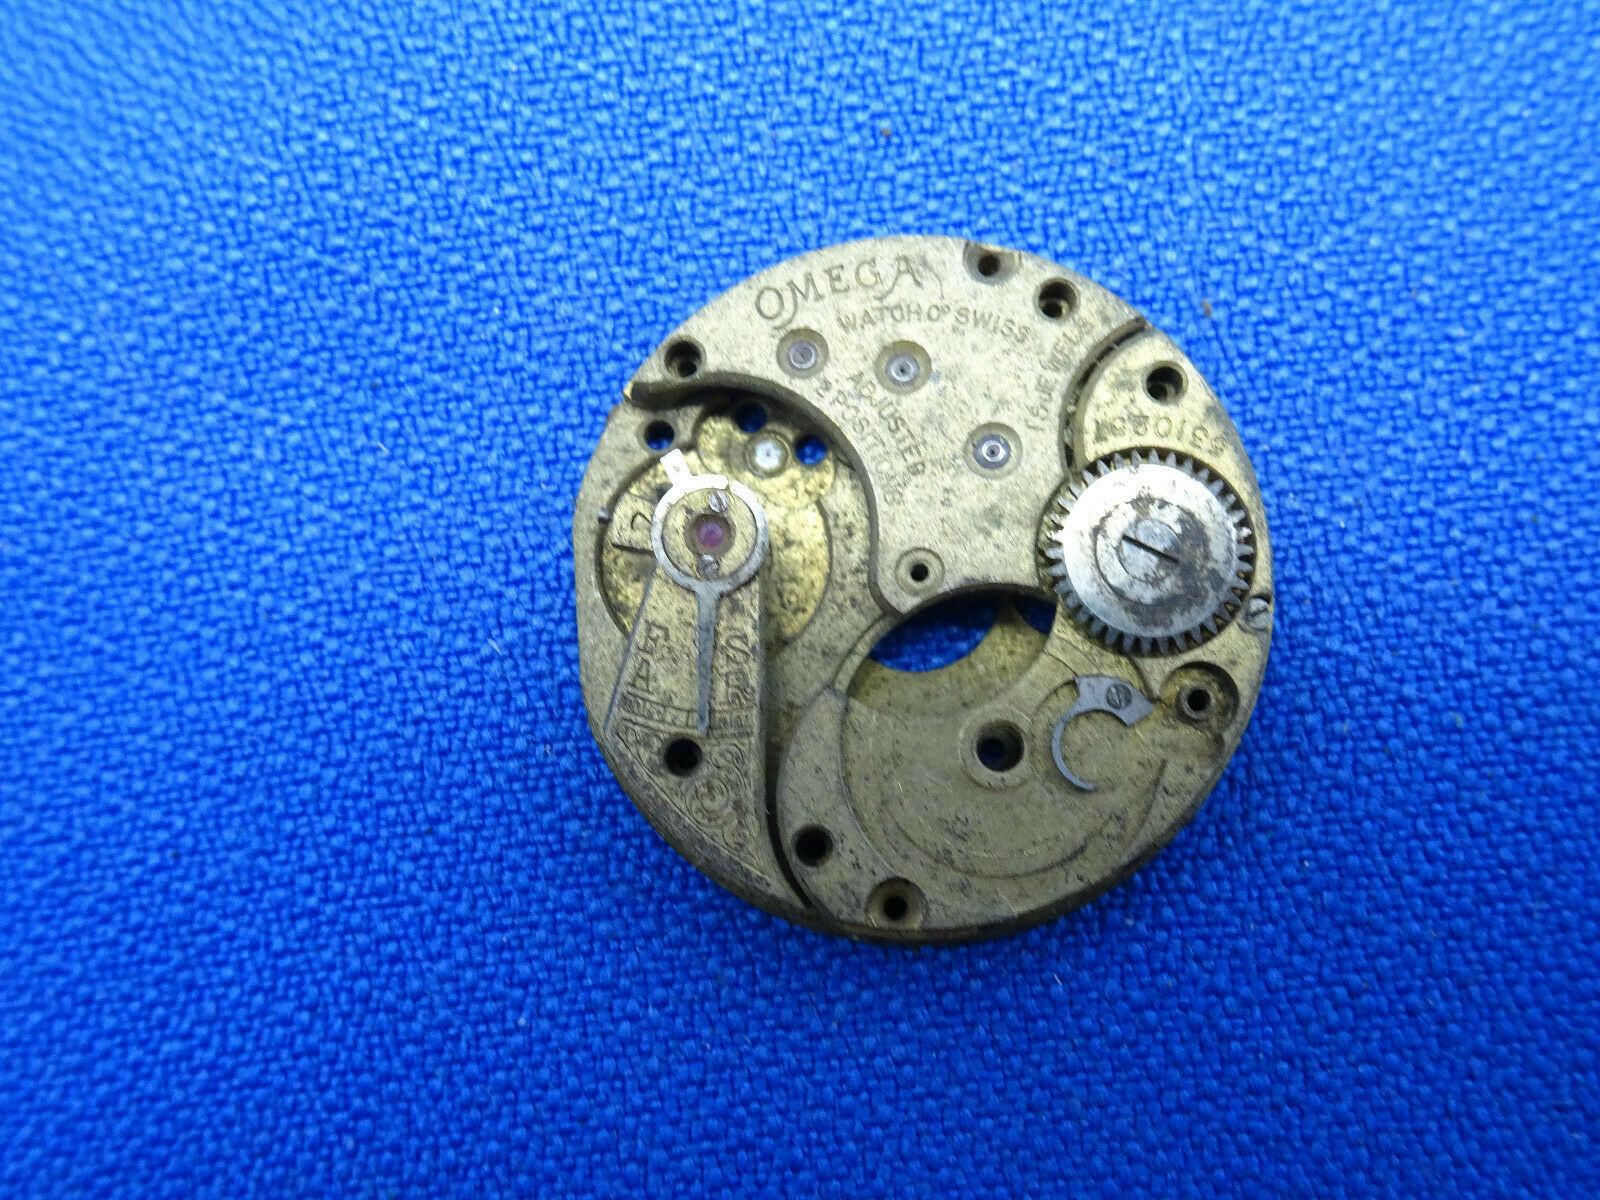 1915 OMEGA TRENCH WATCH PARTIAL RARE ANTIQUE MOVEMENT FOR REPAIR OR PARTS - $120.94